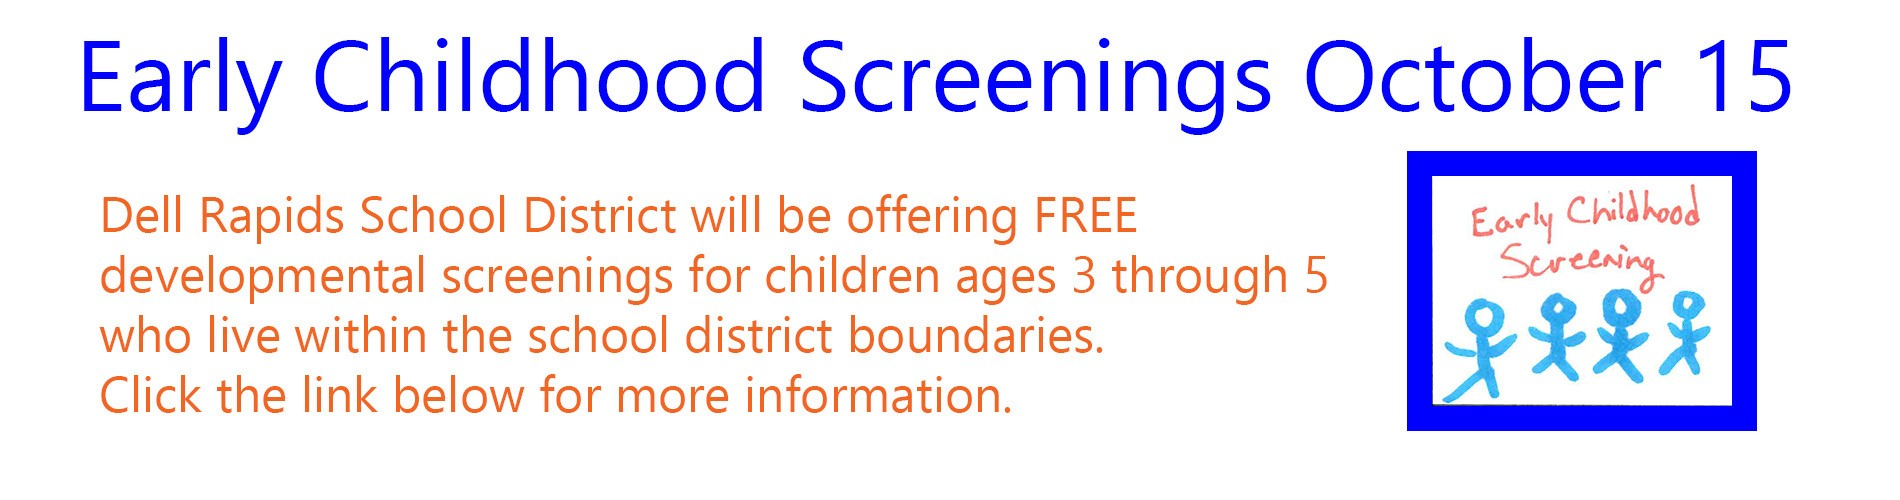 Early Childhood Screenings - October 15 Dell Rapids School District will be offering FREE developmental screenings for children ages 3 to 5 who live within the school district boundaries. Click the Early Childhood link below for more info.